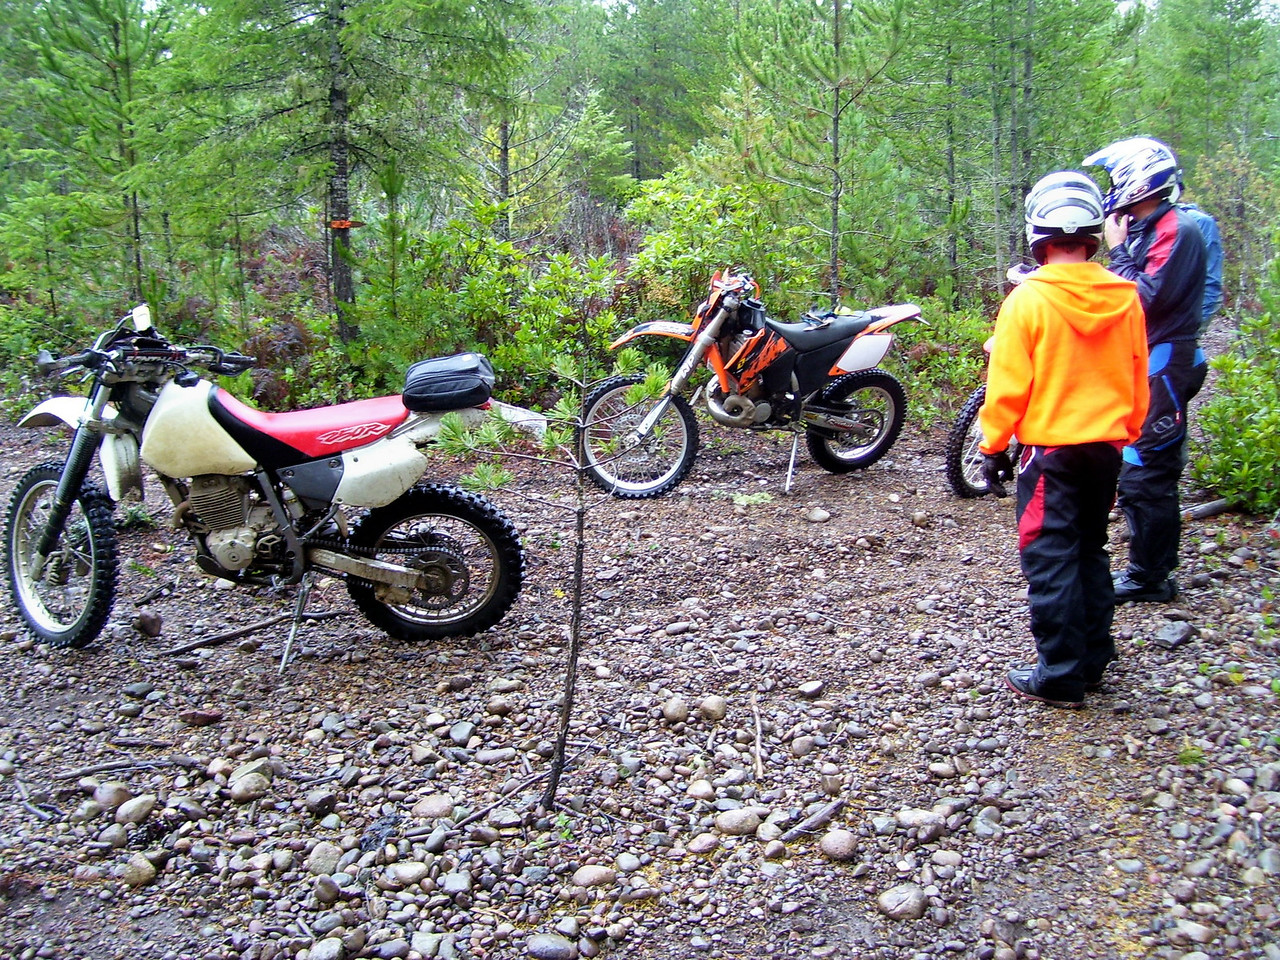 """Jon's XR 250 and Lan's KTM 200 Out near the """"Severed Hand Trail""""."""